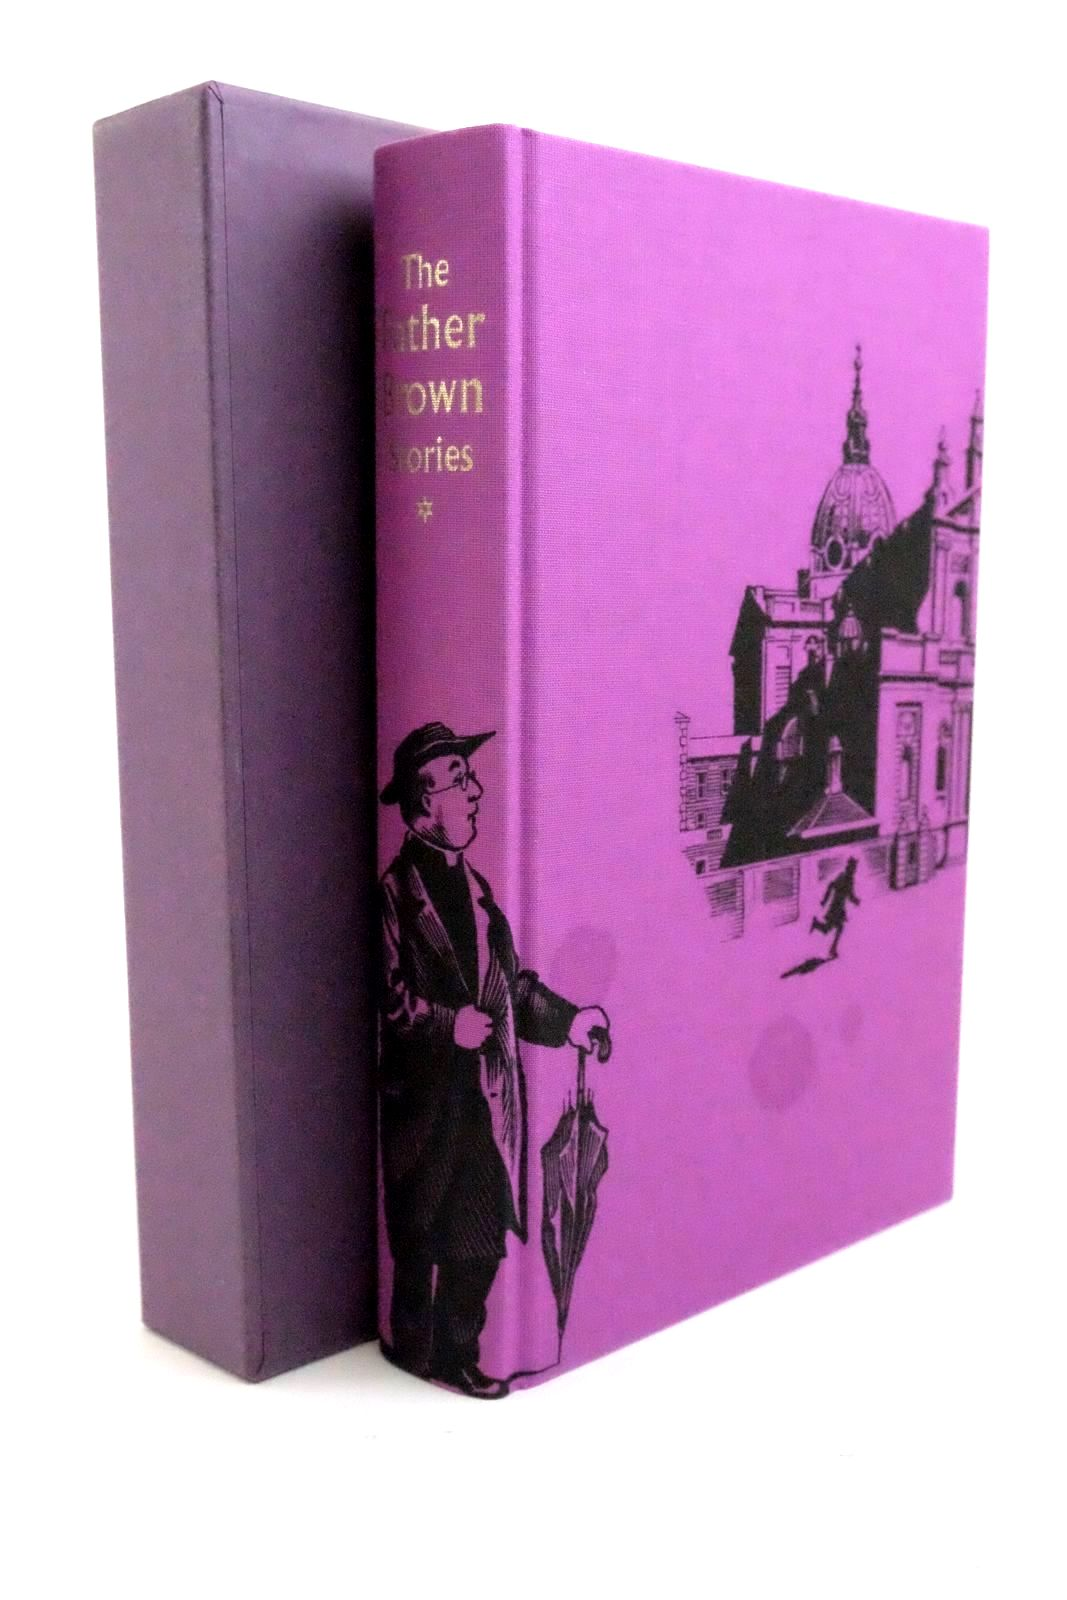 Photo of THE FATHER BROWN STORIES (VOLUME 1) written by Chesterton, G.K. Dexter, Colin illustrated by Biro, Val published by Folio Society (STOCK CODE: 1321280)  for sale by Stella & Rose's Books